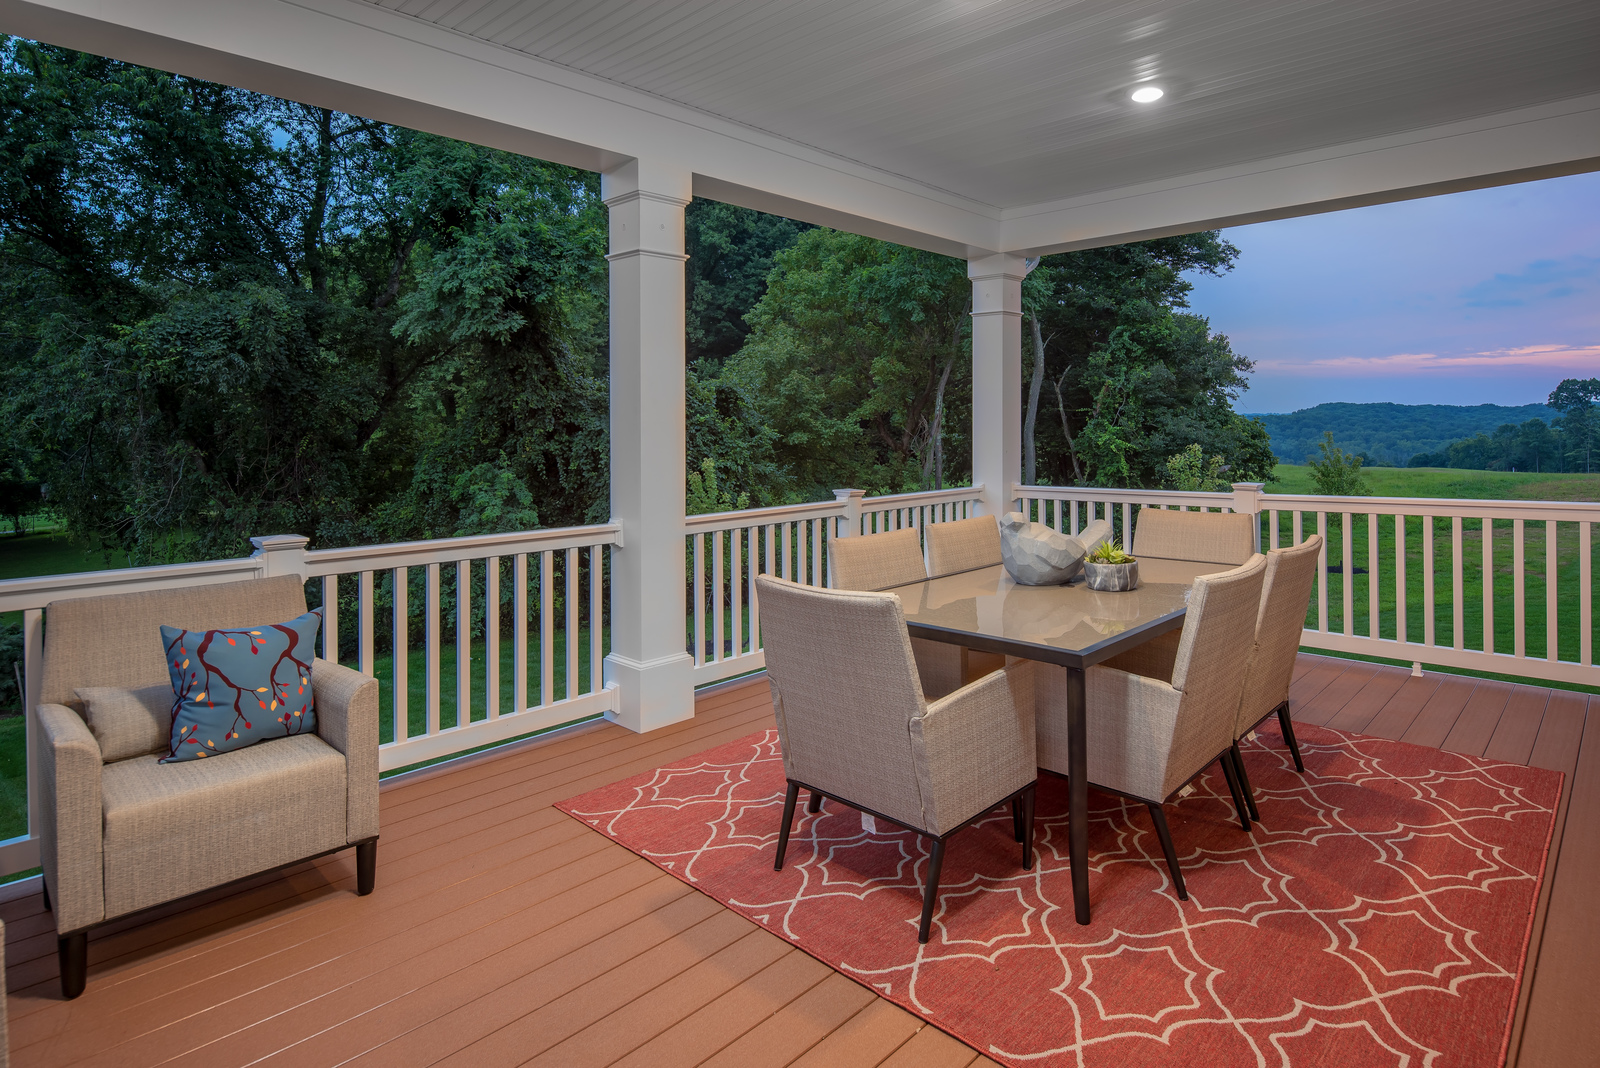 The NVHomes covered porch option is perfect for dining al fresco any time of year.